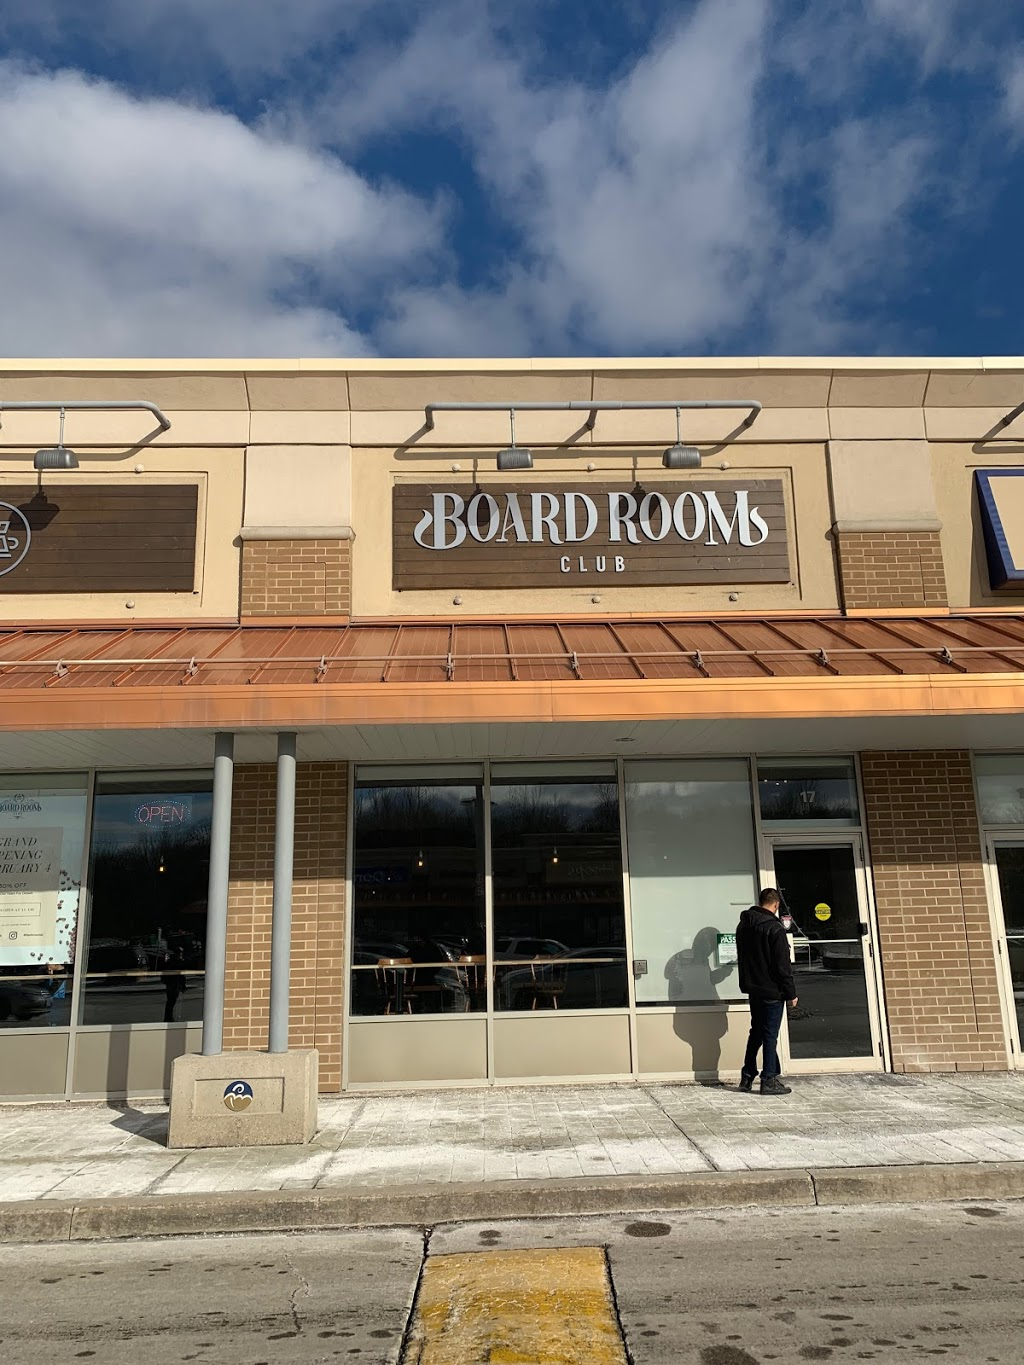 The Boardroom Club Toronto Cafe | cafe | 4205 Keele St #17, North York, ON M3J 3T8, Canada | 4166613423 OR +1 416-661-3423